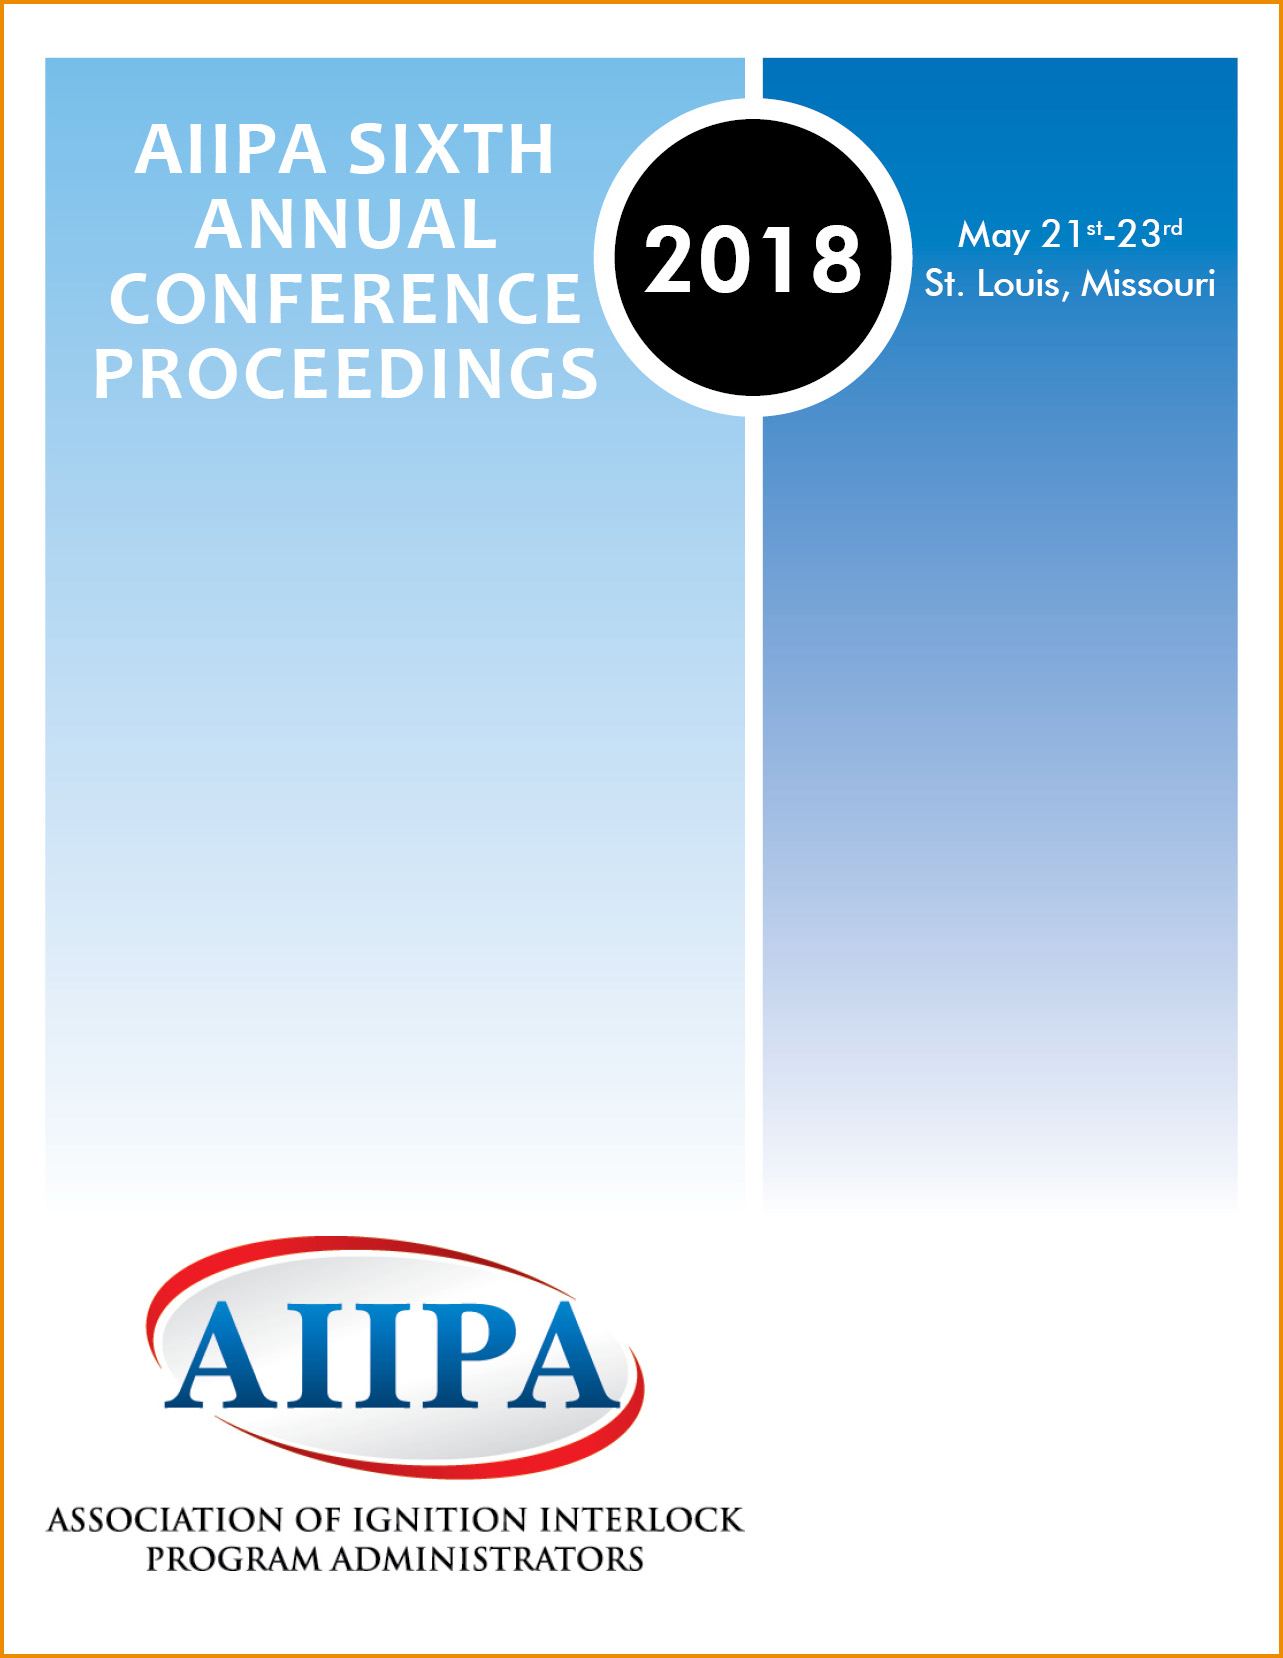 AIIPA Sixth Annual Conference Proceedings 2018